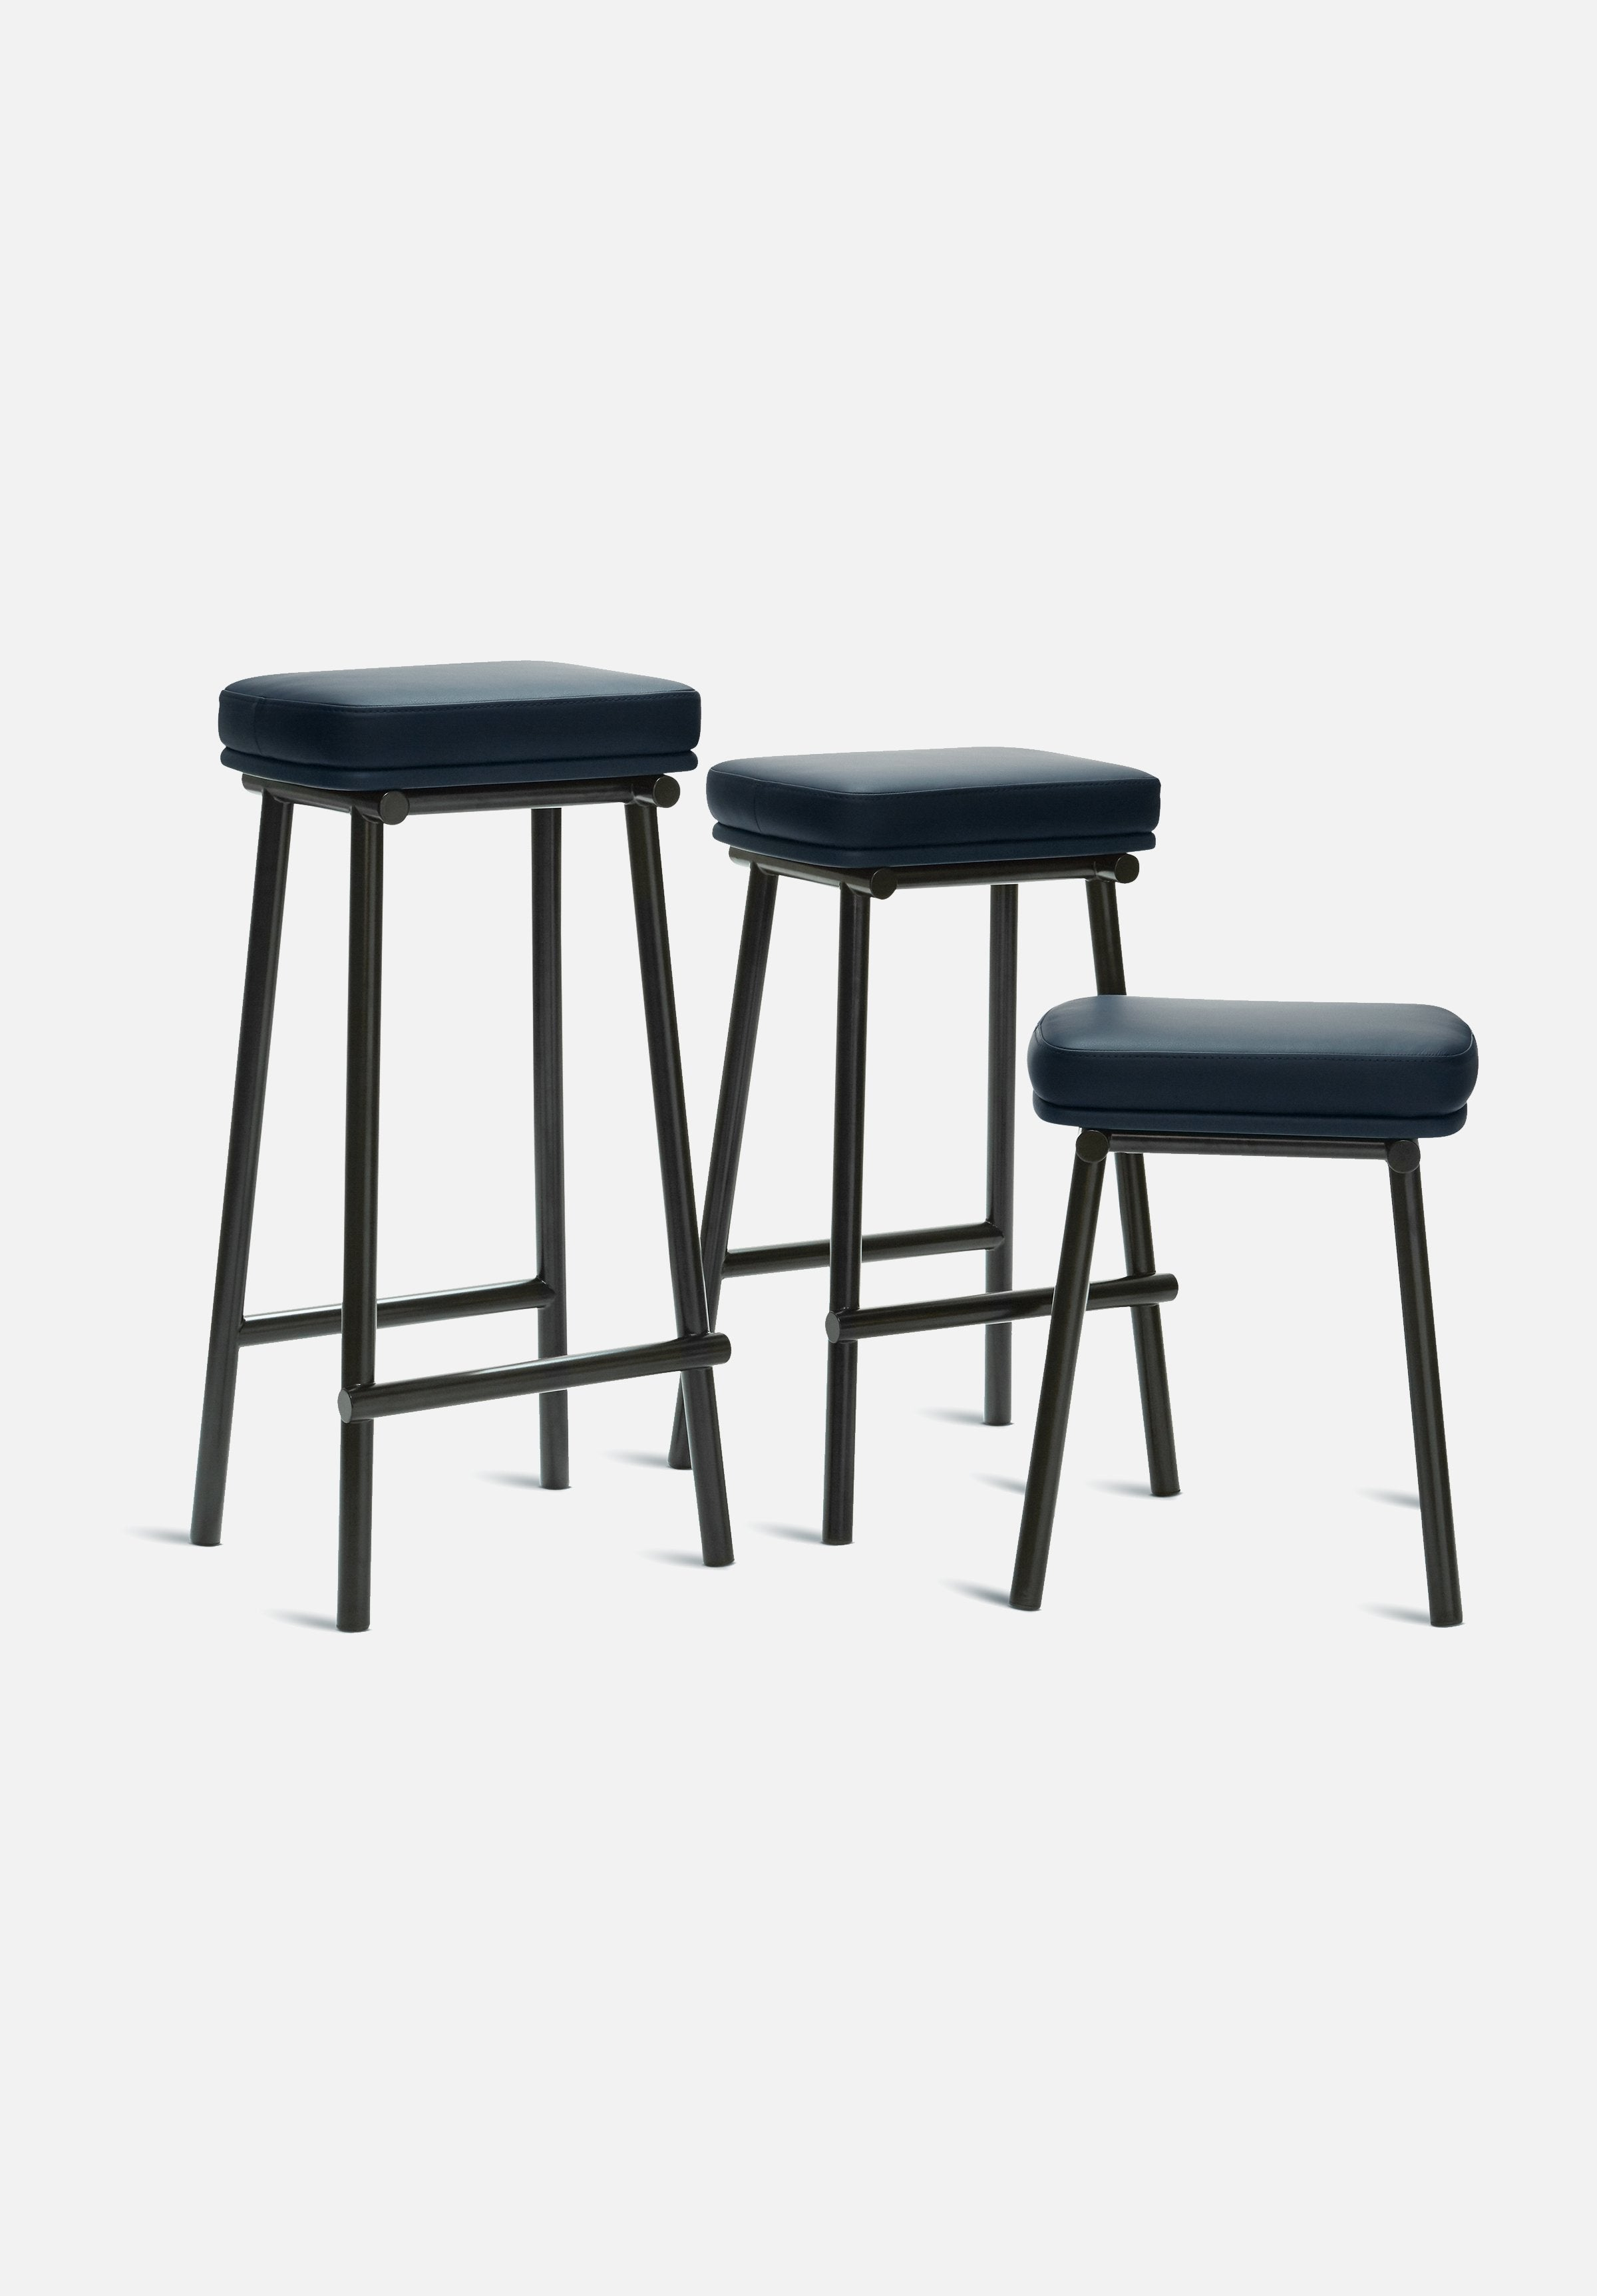 Tubby Bar Stool-Faye Toogood-Please Wait To Be Seated-Natural Ash-Average